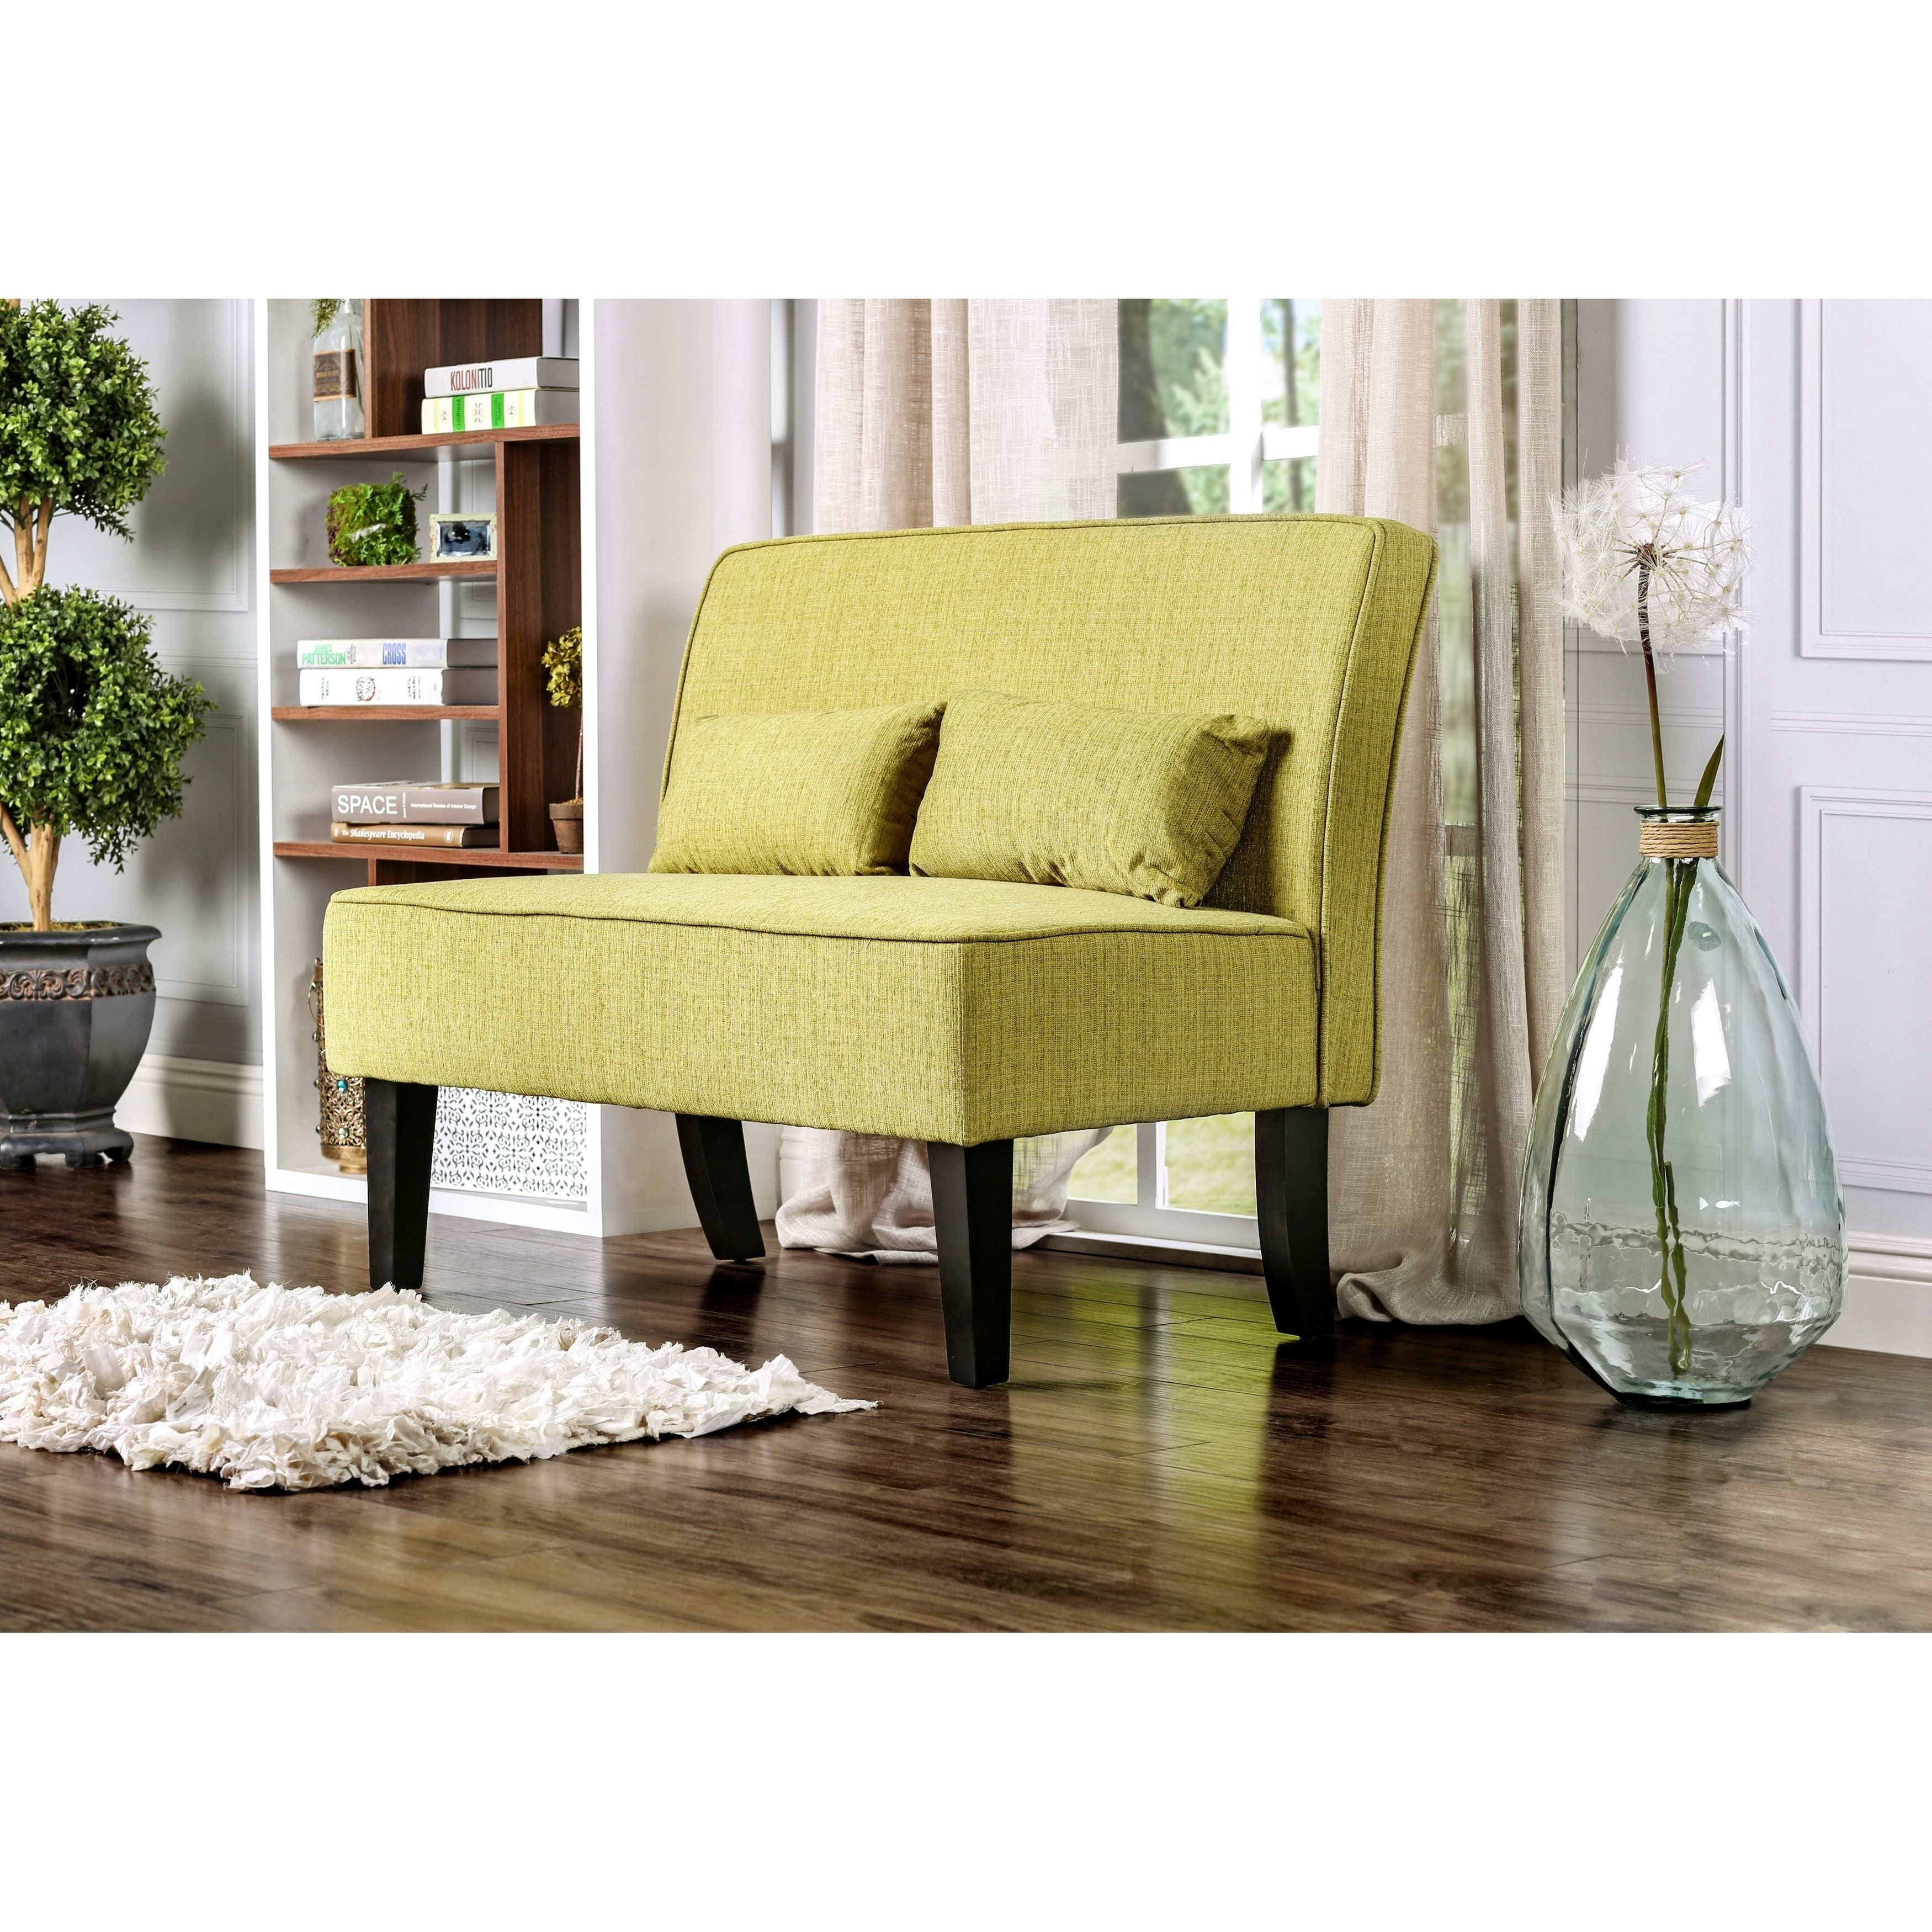 wholesale beammeup ventura ca furniture stores info warehouse fine design online county store in outlet shop